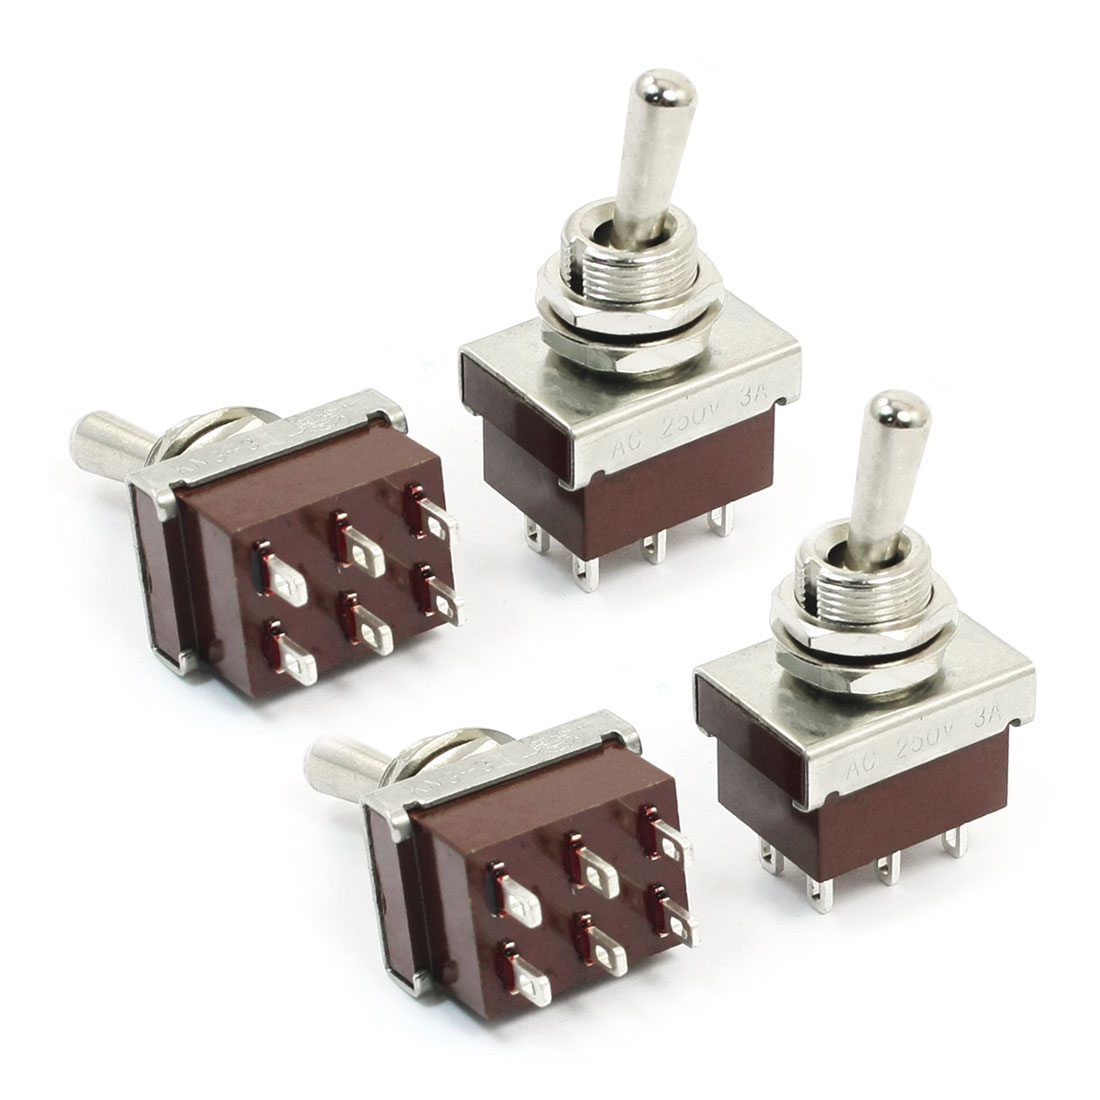 Panel Mount 6 Pin 2PDT ON/OFF 2 Position Toggle Switch AC 250V 3A KN3-3 4pcs